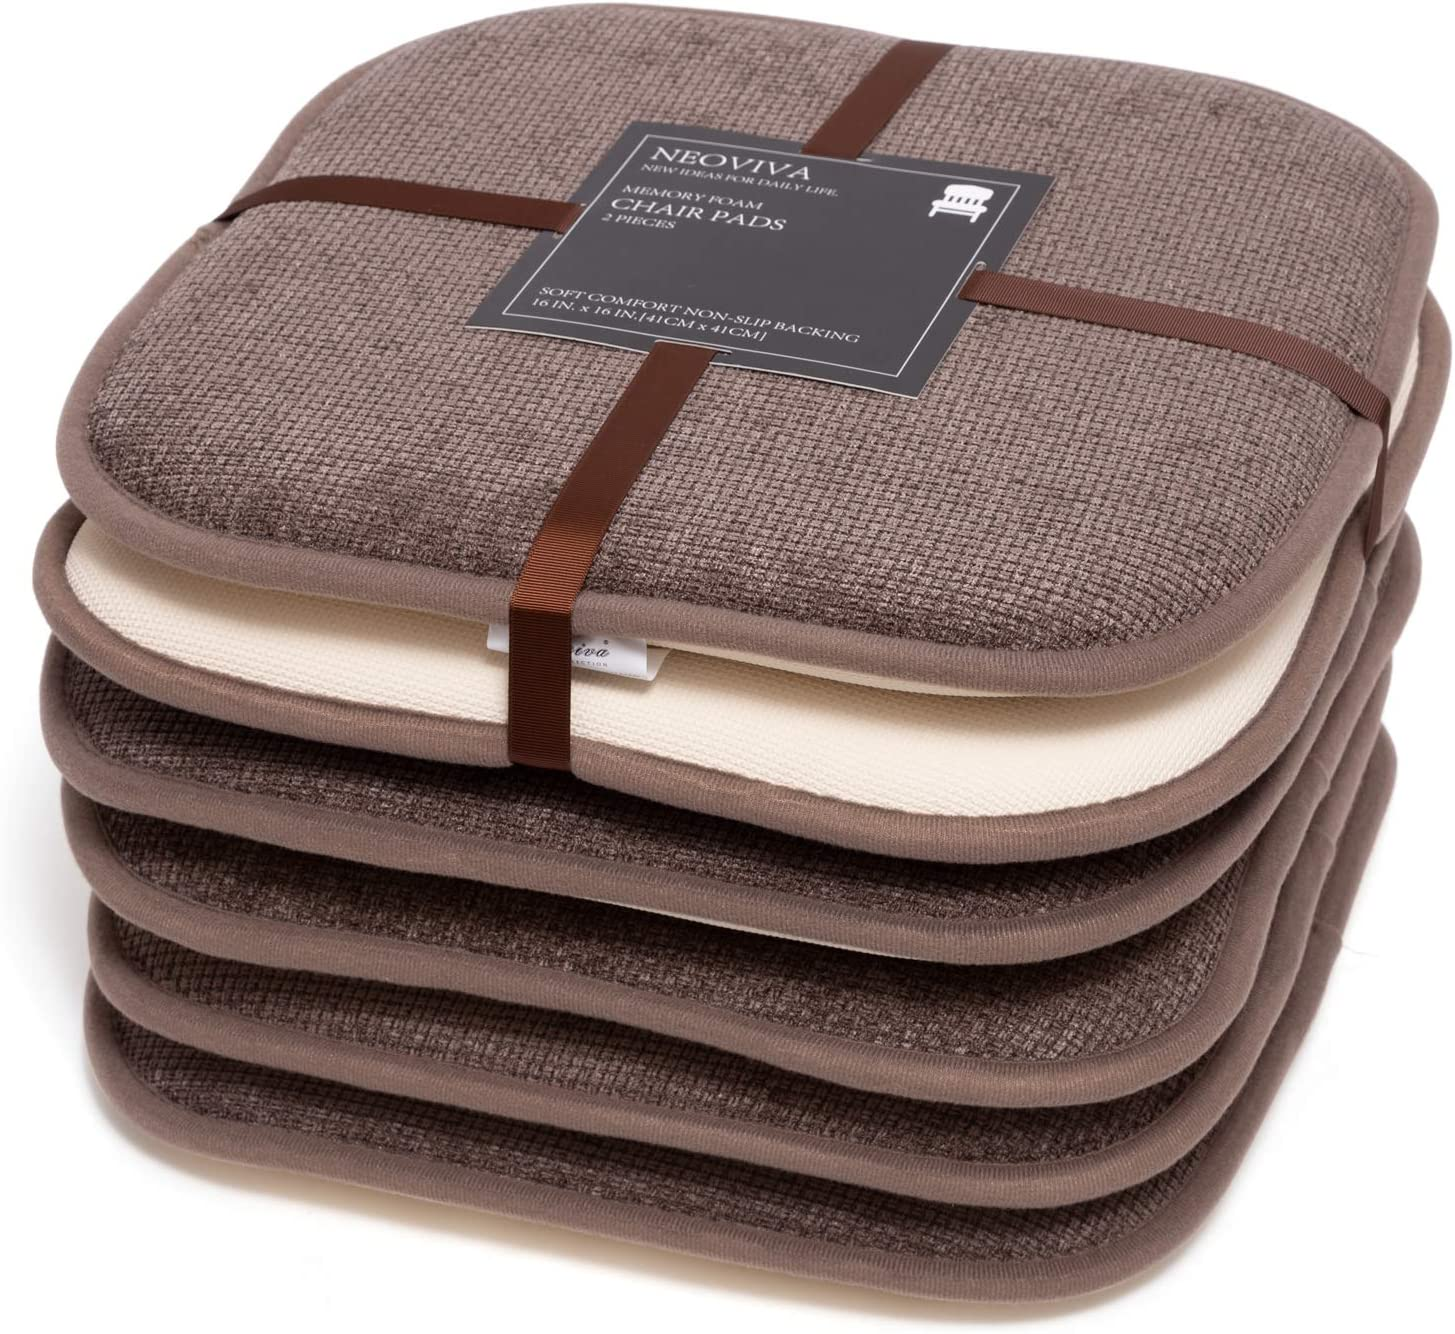 NEOVIVA Memory Foam Kitchen Chair Pads with Non Slip Backing, 6 Pack Seat Cushion for Everyday Dining, Woodsmoke Brown